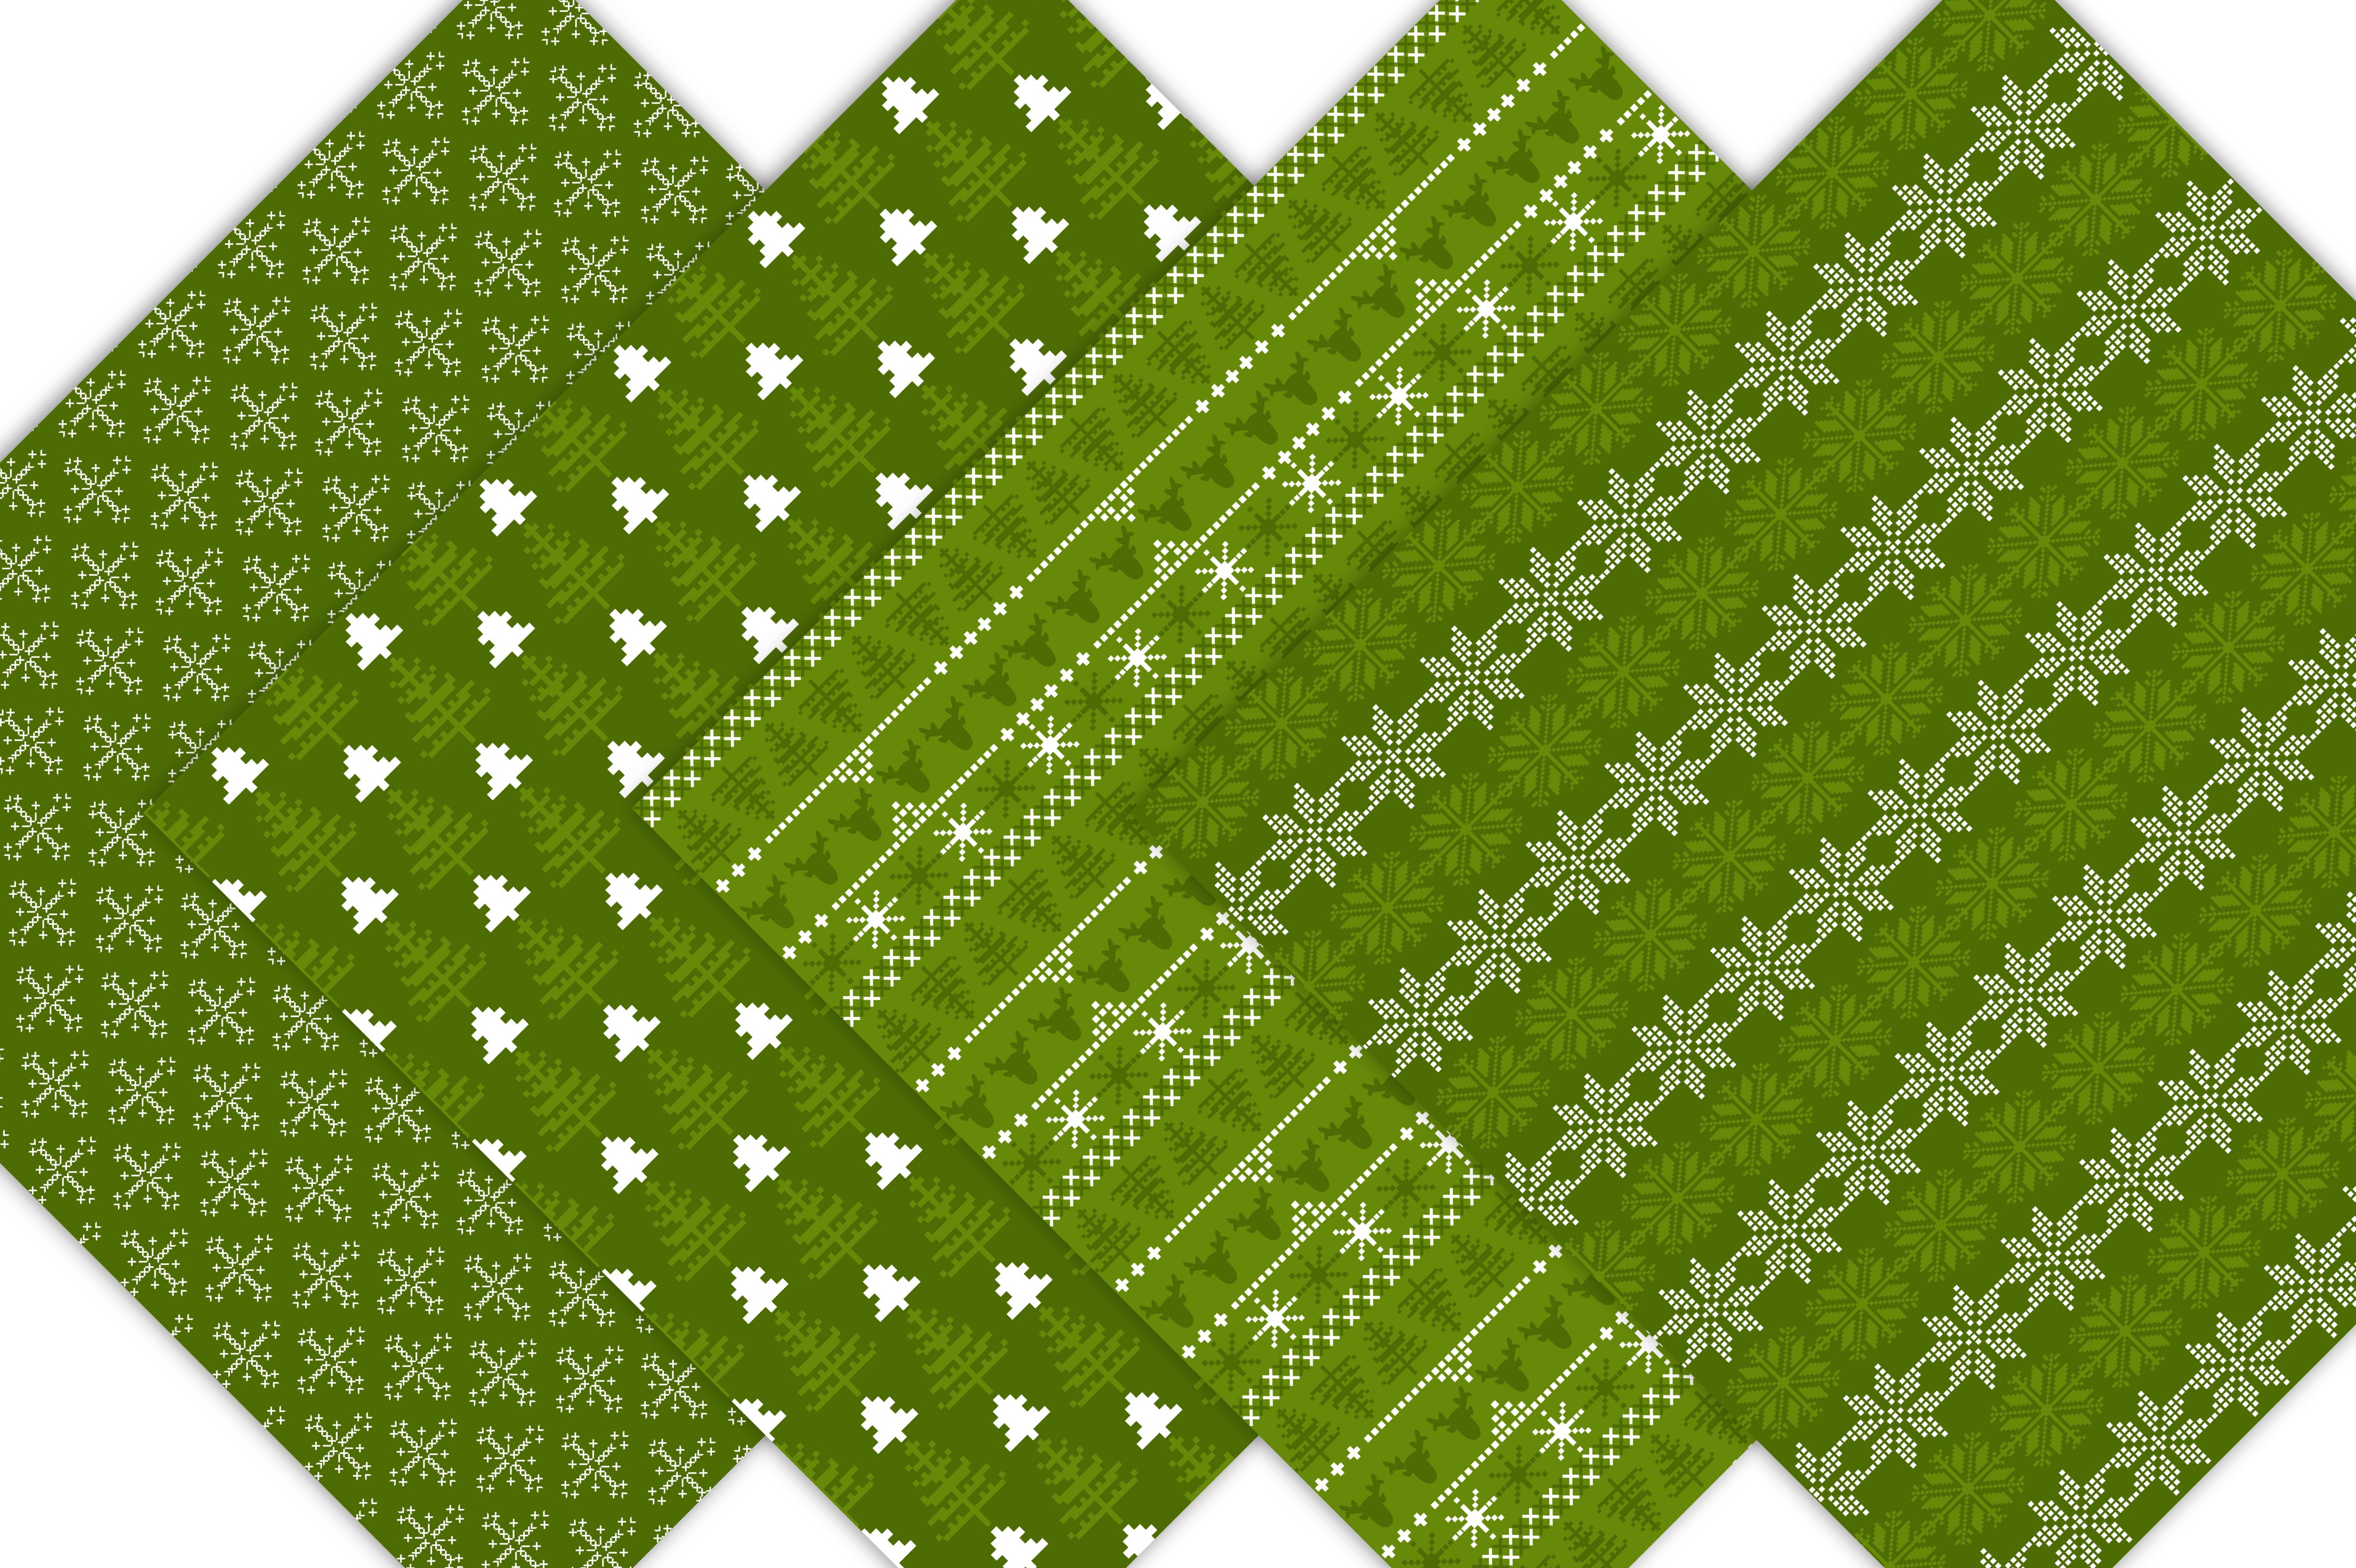 Green Nordic Patterns example image 5